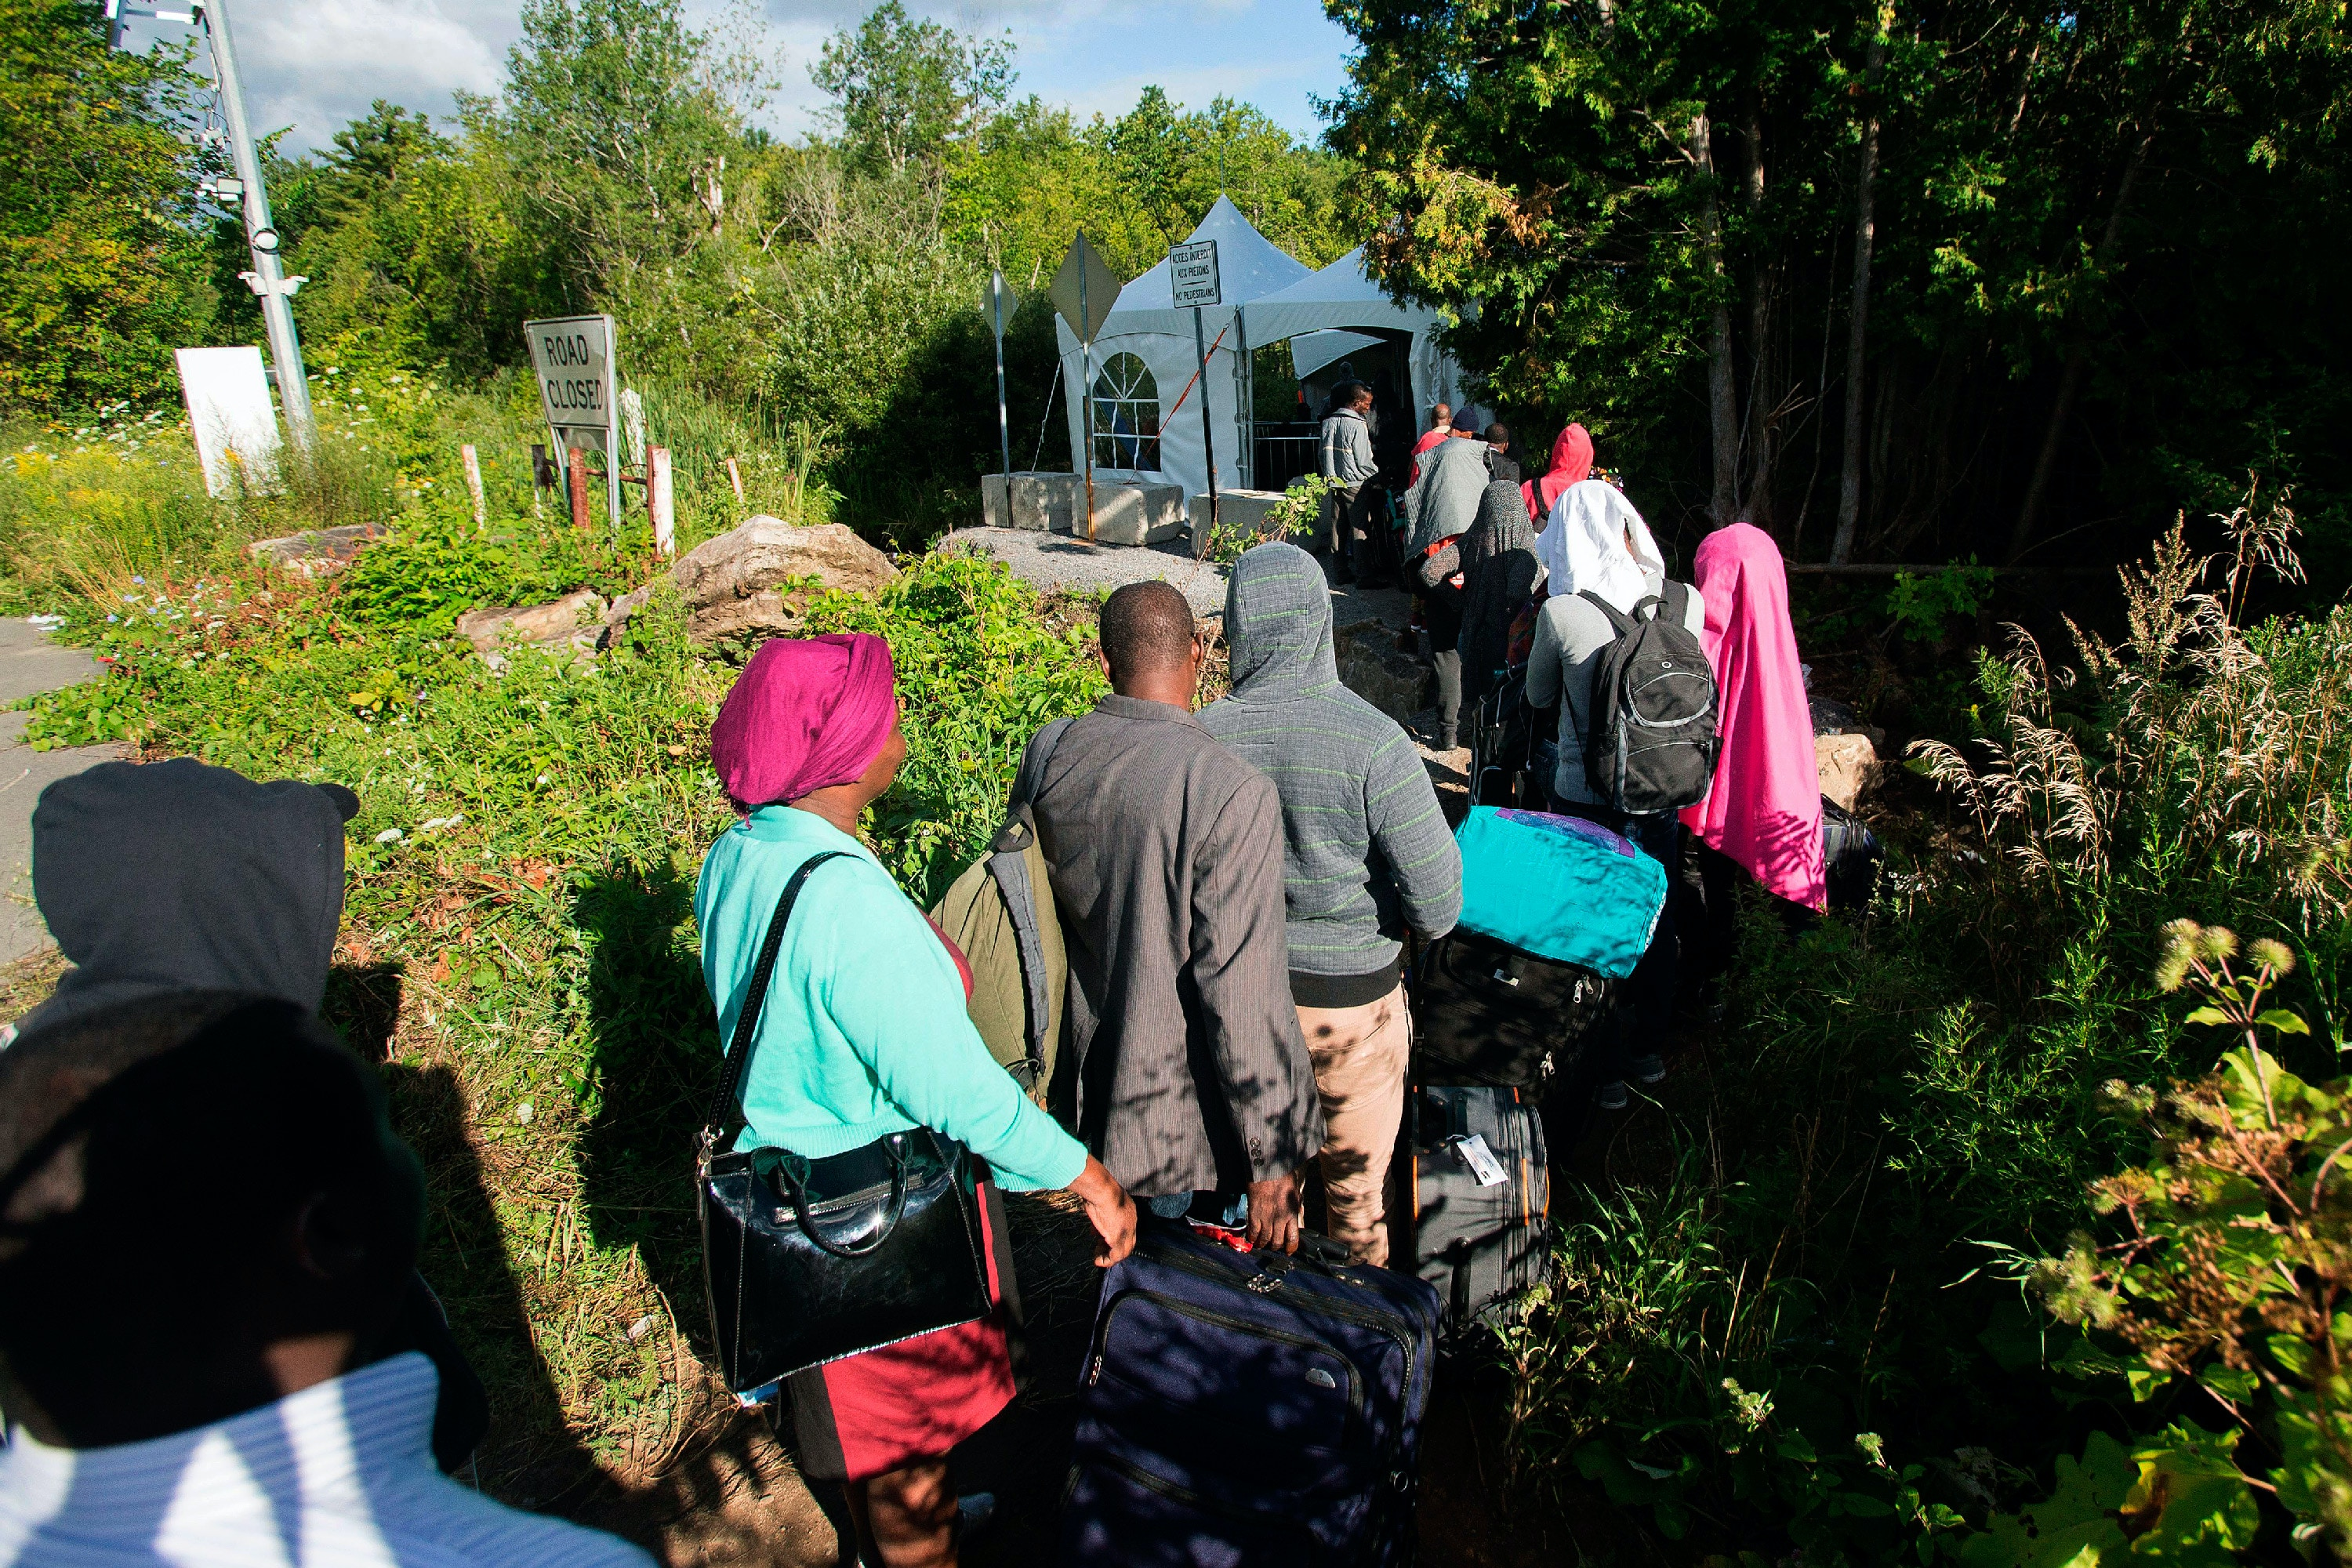 TOPSHOT - A long line of asylum seekers wait to illegally cross the Canada/US border near Champlain, New York on August 6, 2017. - In recent days the number of people illegally crossing the border has grown into the hundreds. (Photo by Geoff Robins / AFP)(Photo credit should read GEOFF ROBINS/AFP/Getty Images)